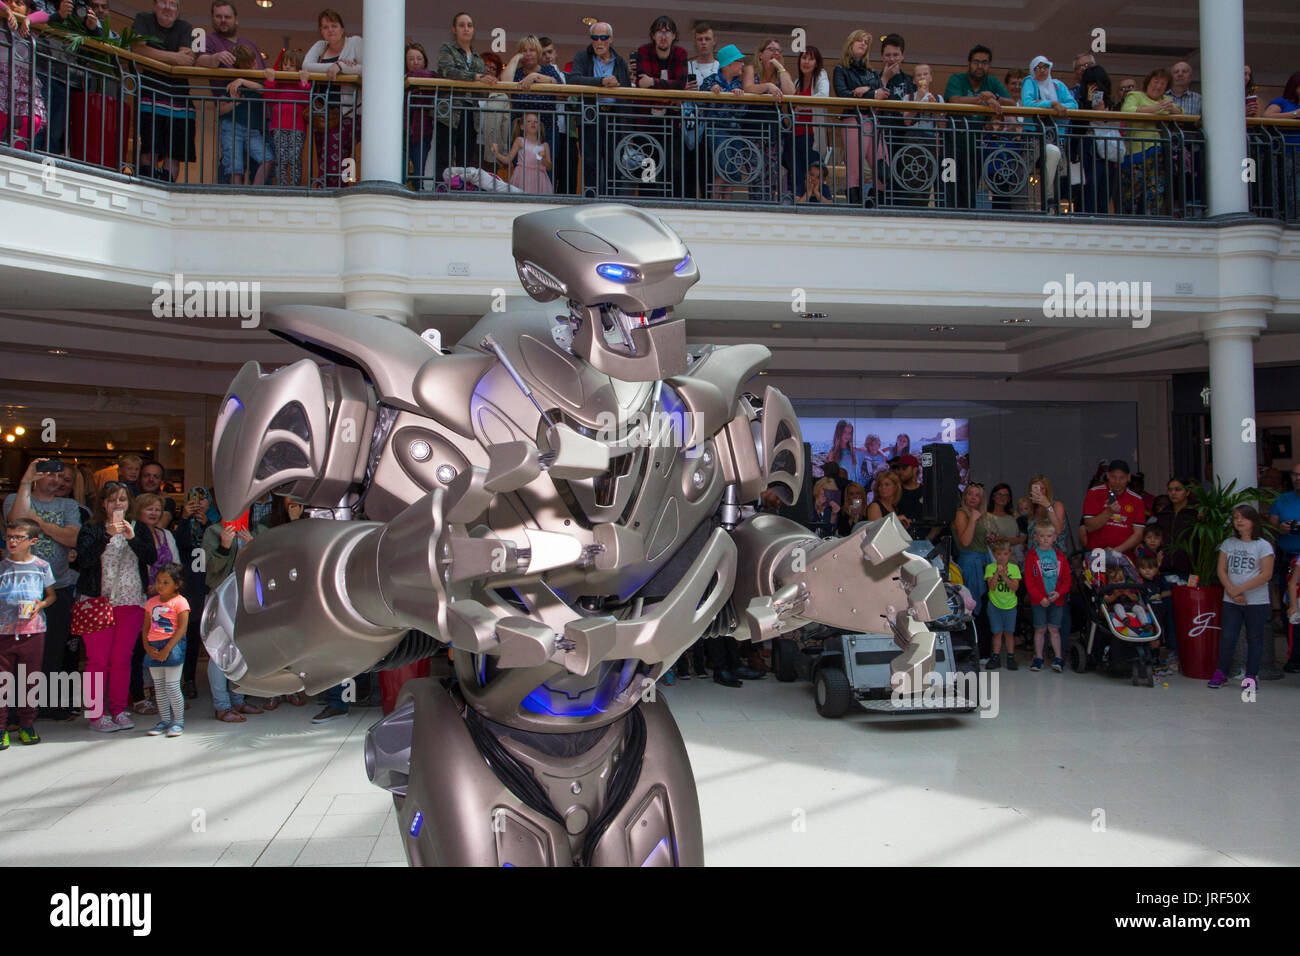 Preston, Lancashire, UK. Titan the robot, wearing an exoskeleton suit, wows the crowds at St George's Centre. - Stock Image